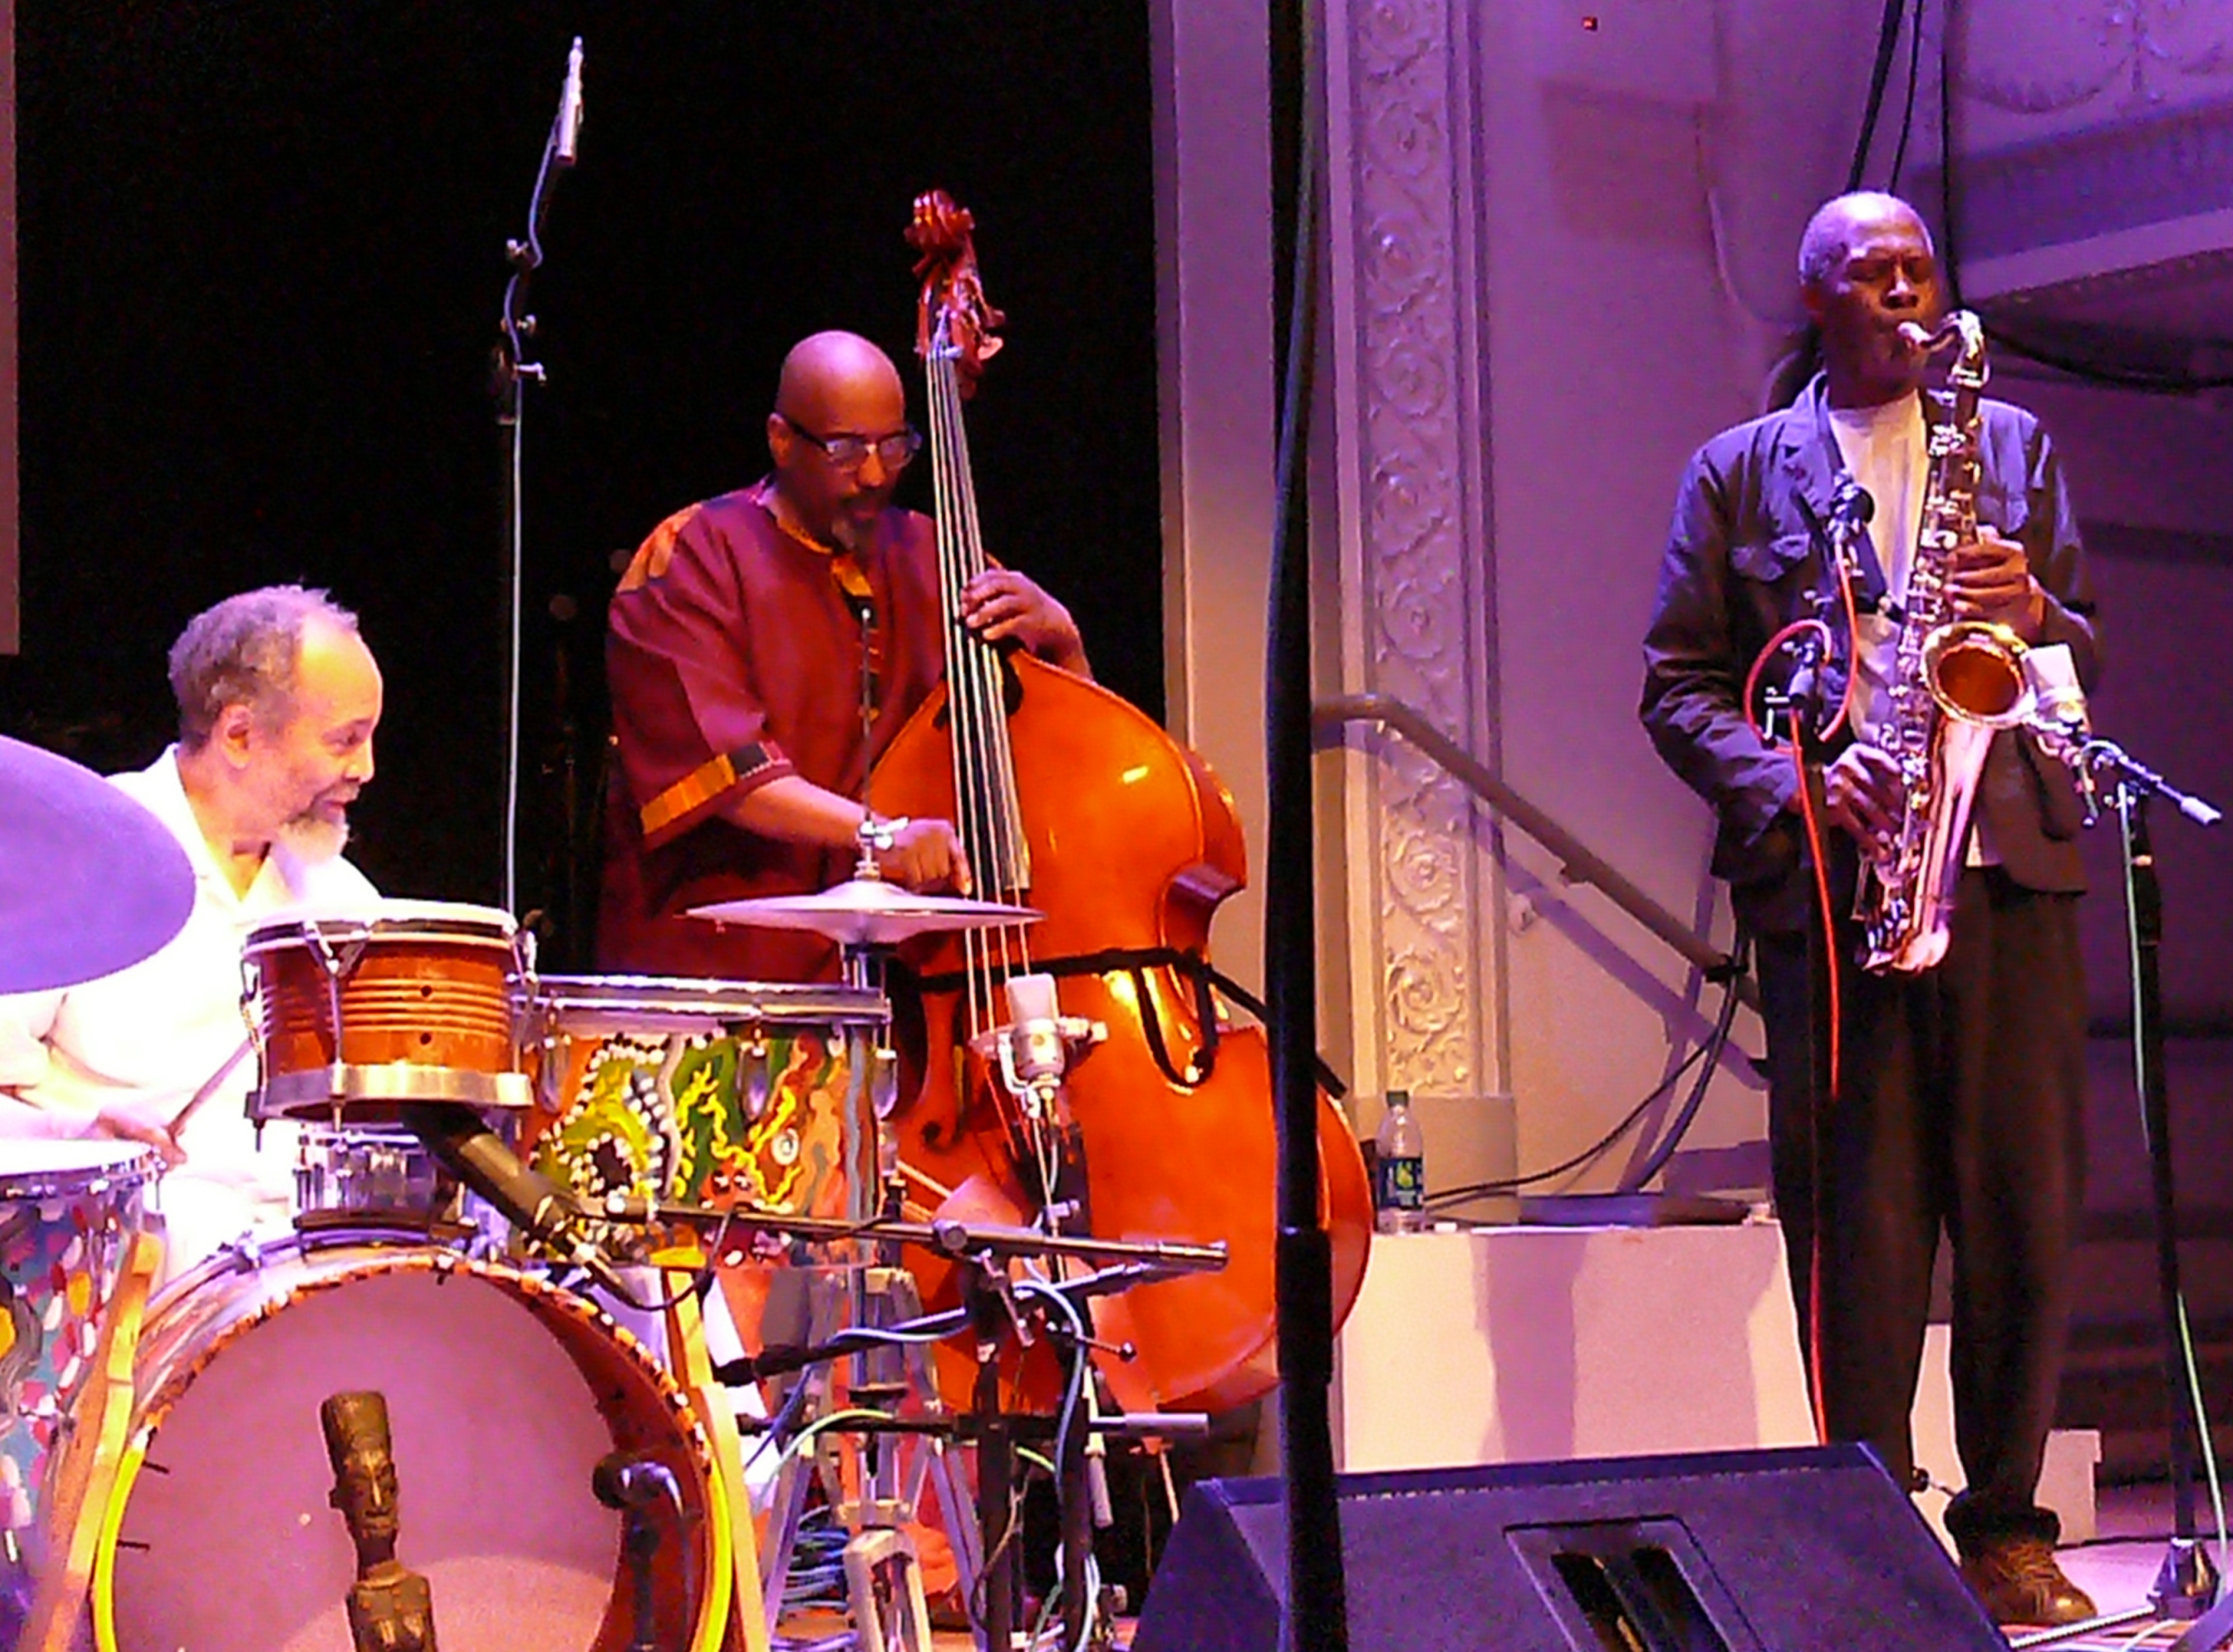 Milford graves, william parker and charles gayle at the vision festival in new york in june 2013